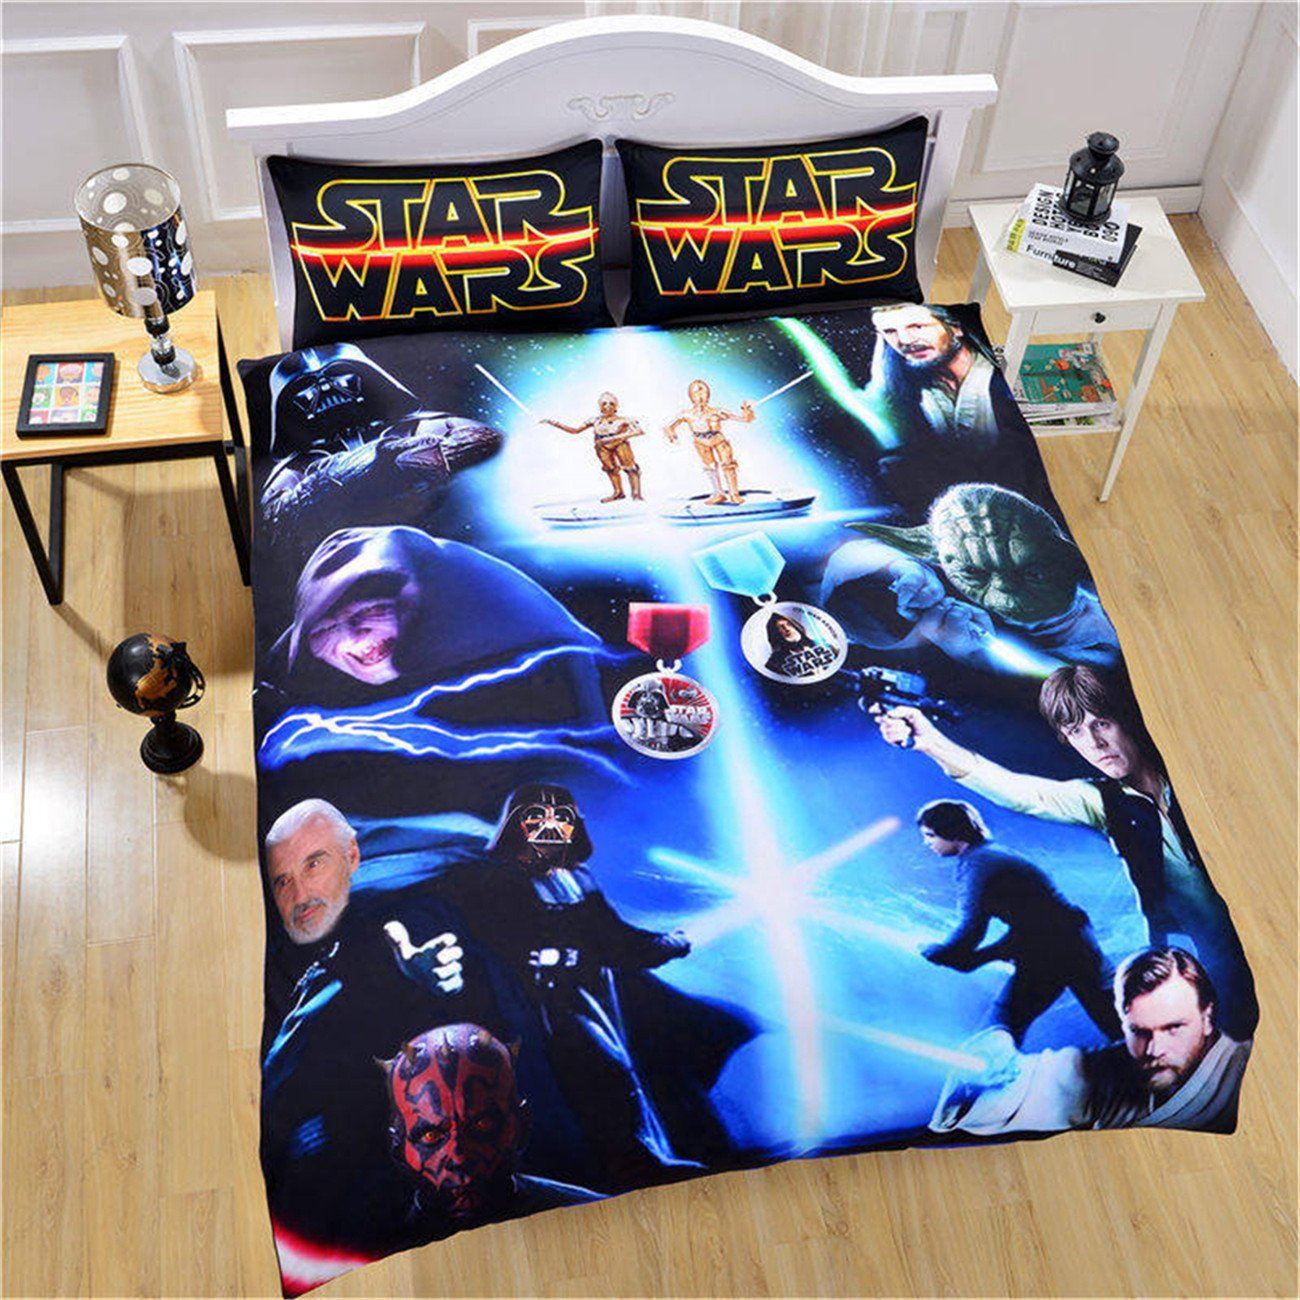 NOOS 3D Star Wars Duvet Cove Sets Kids Love Movies Bedding Set 2018 Design 100% Soft Comfortable Microfiber Bed Set Including 3PC 1Duvet Cover,2Pillowcases Twin Full Queen King Size